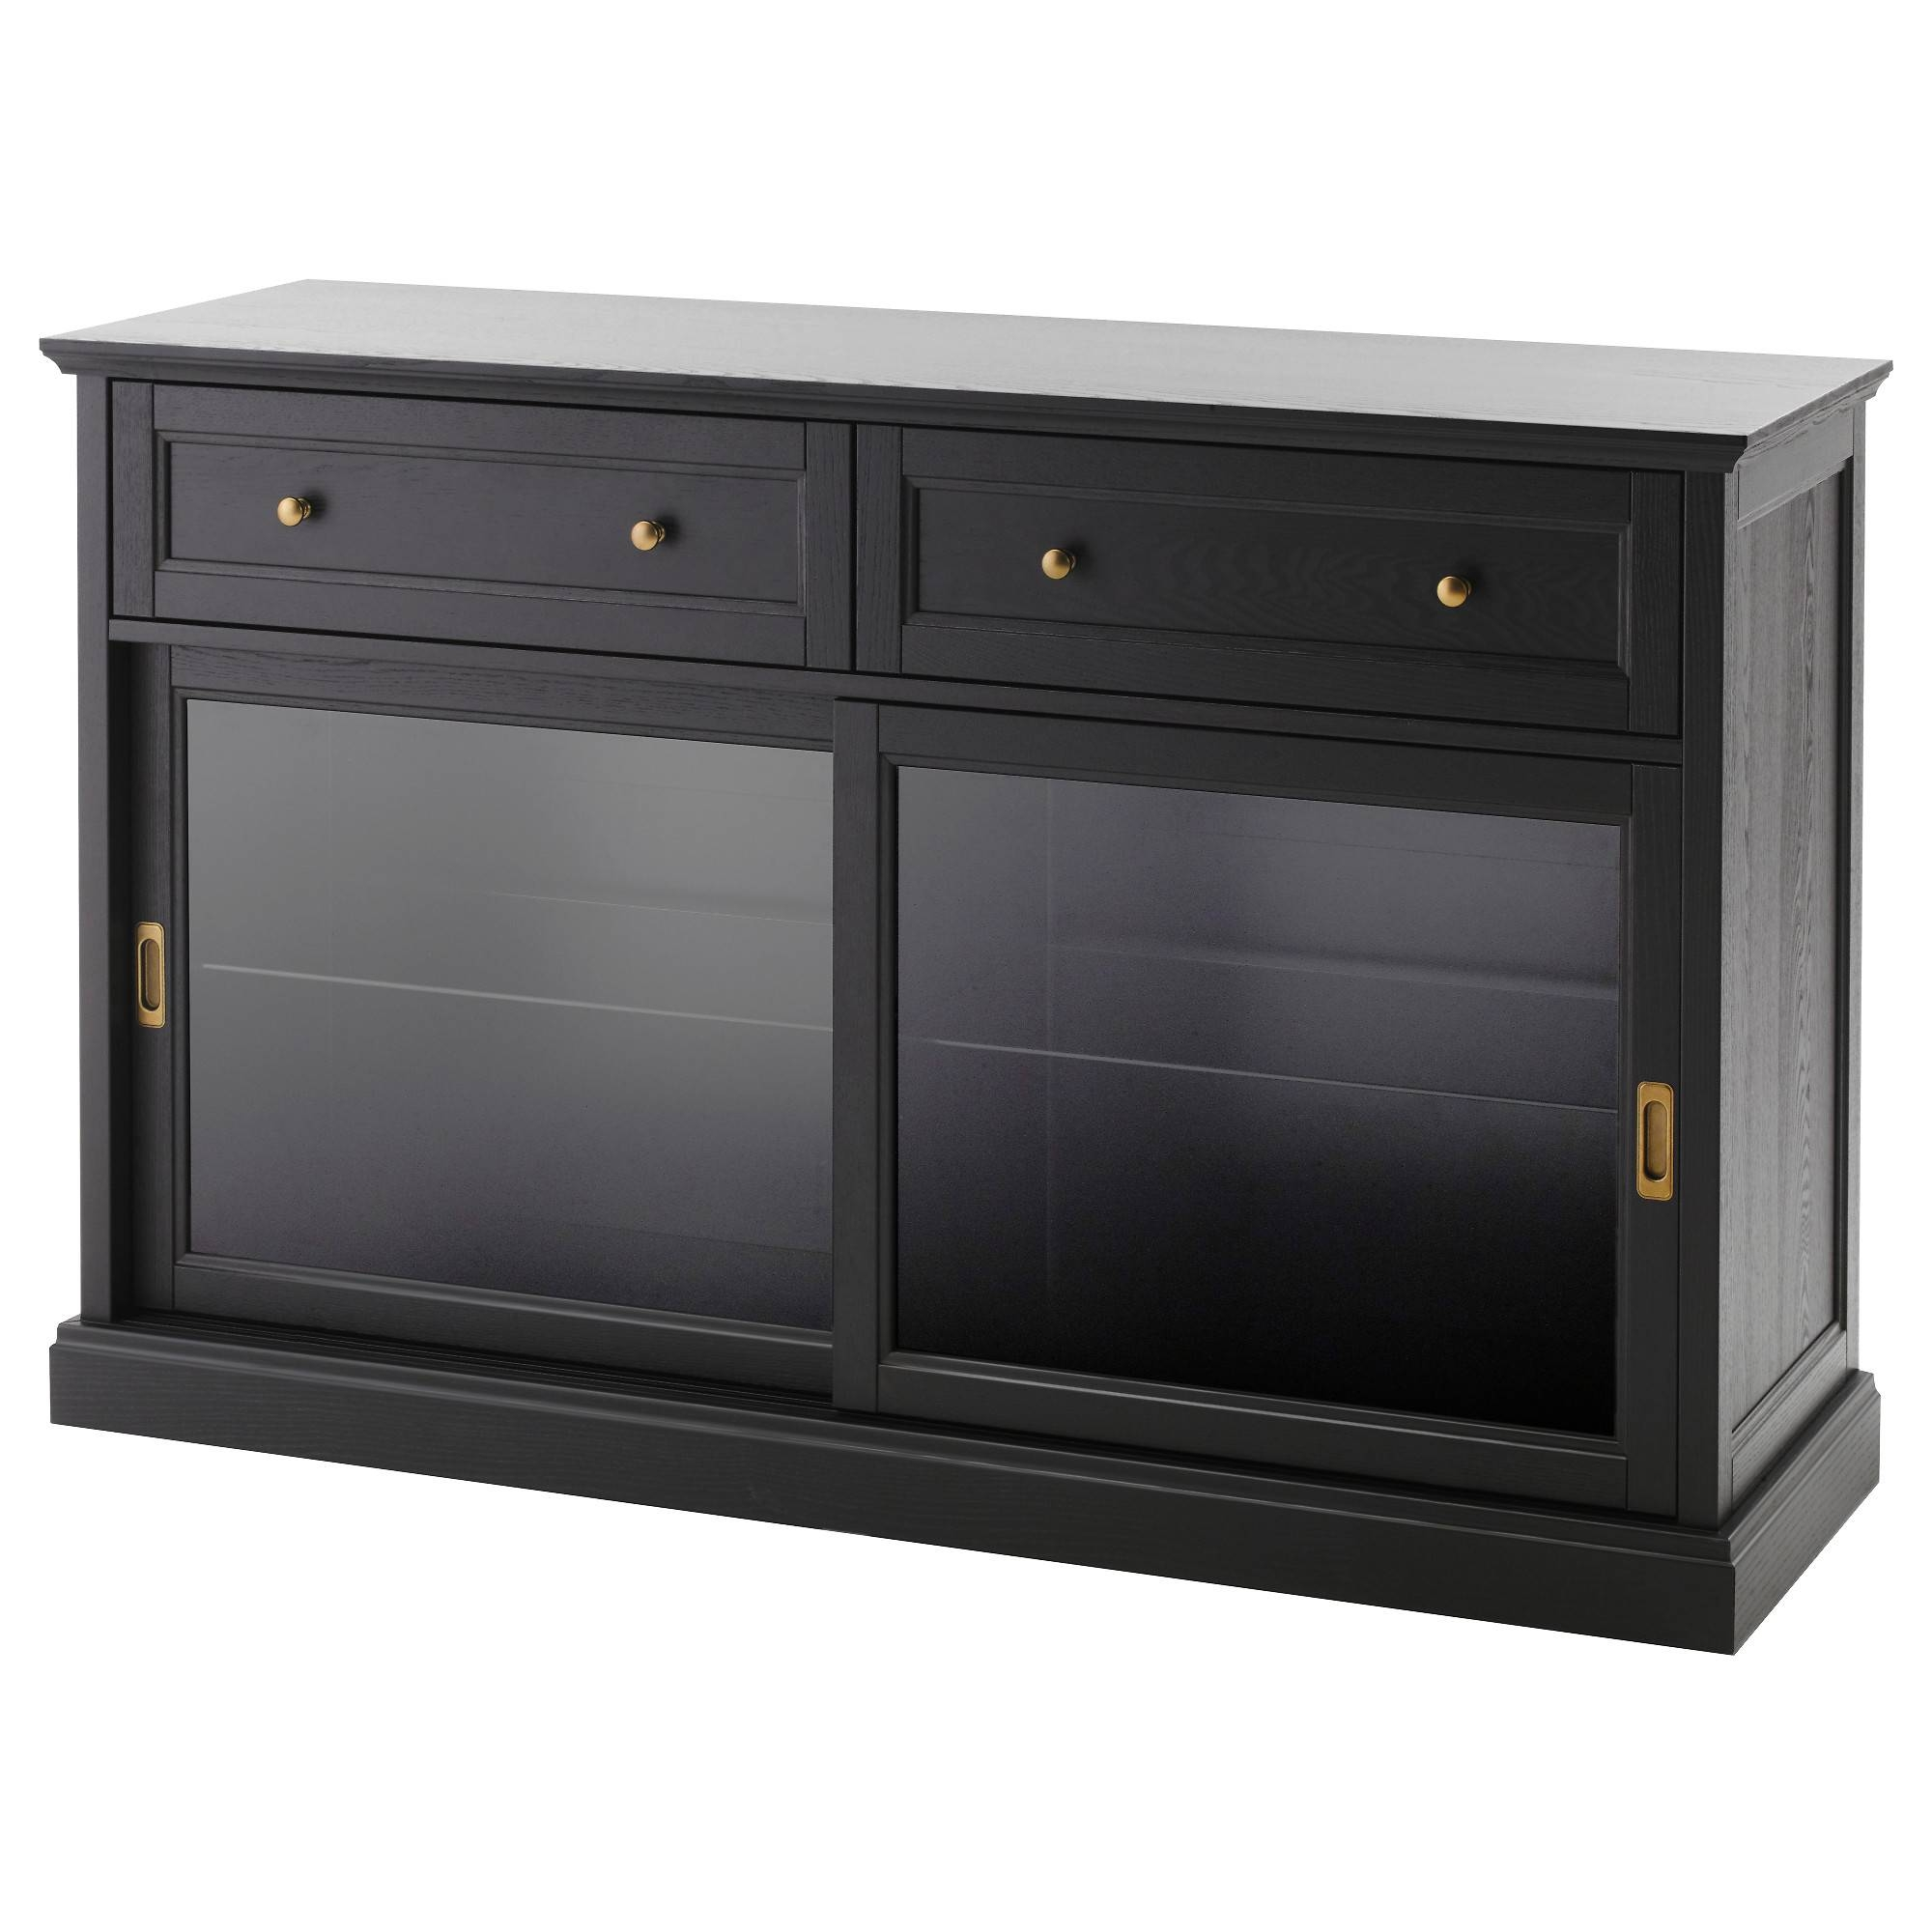 Buffet Tables & Sideboards – Ikea Inside Metal Sideboards (View 7 of 20)